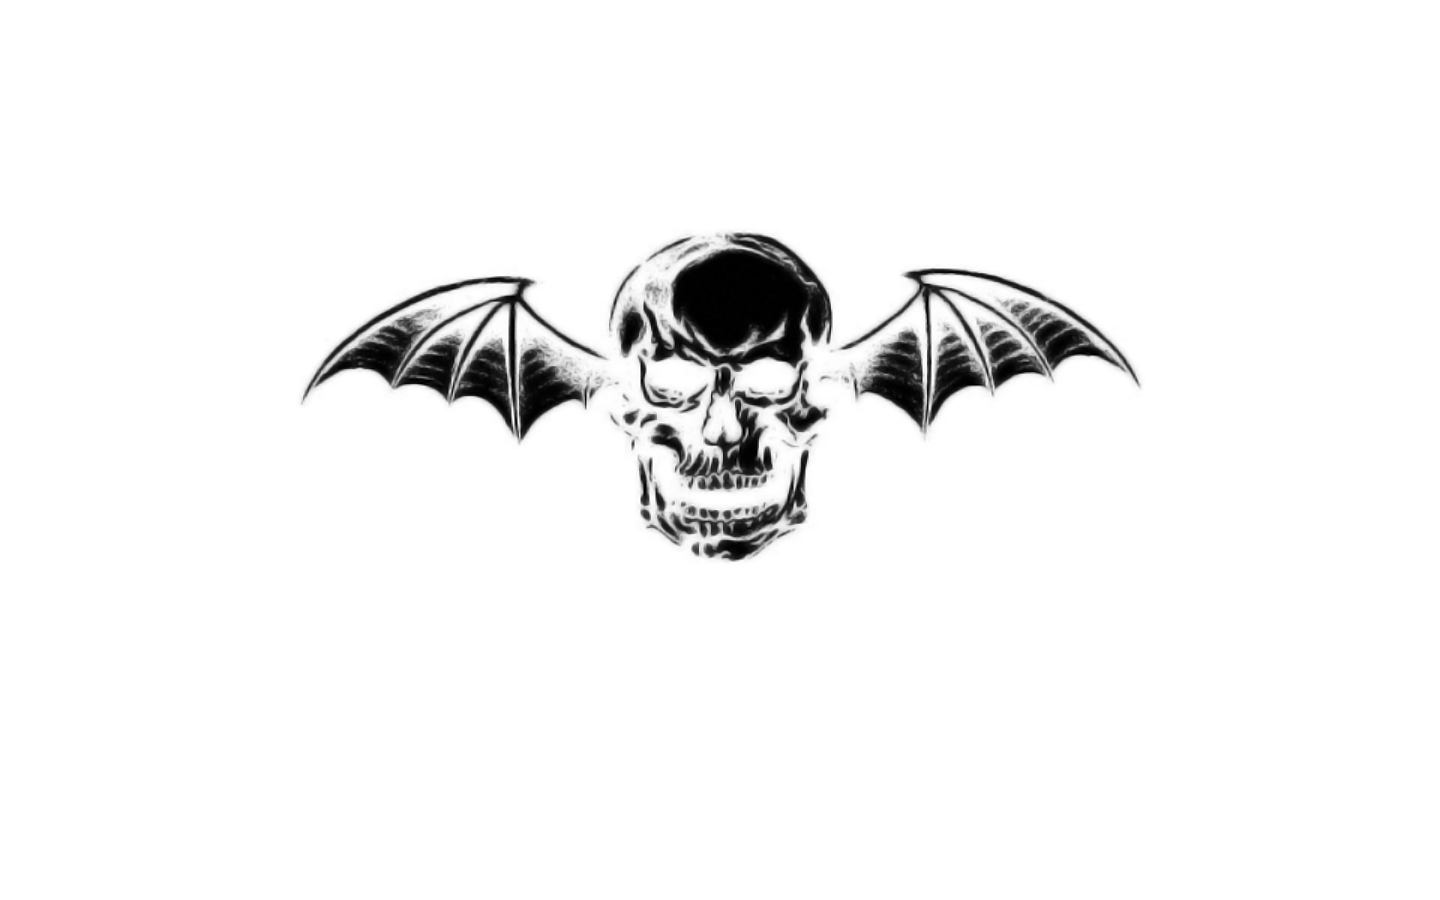 Wallpapers hd for mac avenged sevenfold wallpaper high definition avenged sevenfold wallpaper high definition voltagebd Choice Image